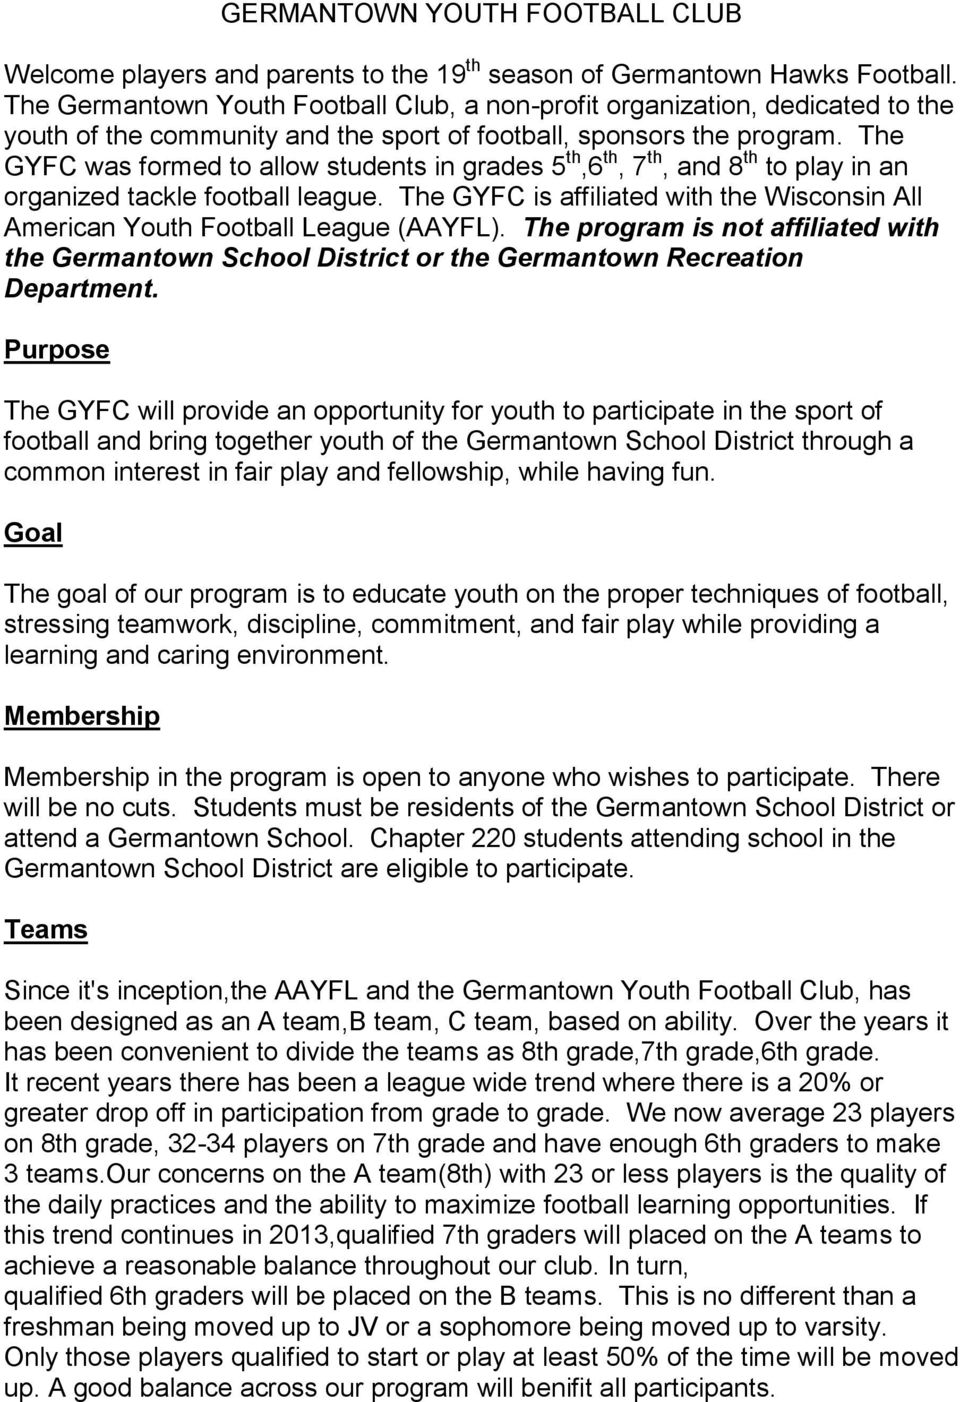 The GYFC was formed to allow students in grades 5 th,6 th, 7 th, and 8 th to play in an organized tackle football league.